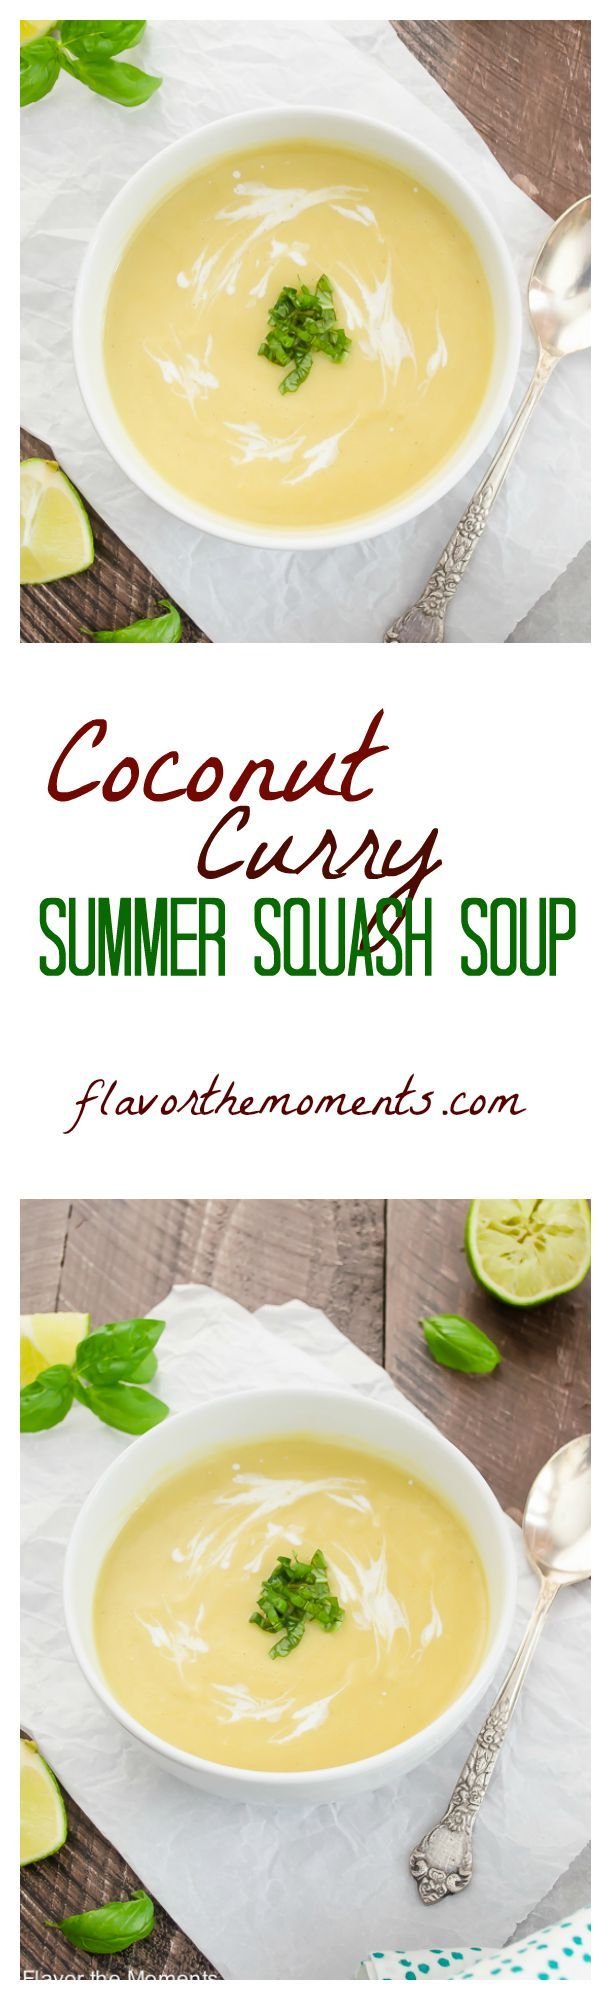 coconut-curry-summer-squash-soup-collage-flavorthemoments.com.   Use entire can of milk and full lime.  Used 6 small to med yellow squash (included one zuke). Needs salt. Used garam masala. Ran out of garlic so used none.